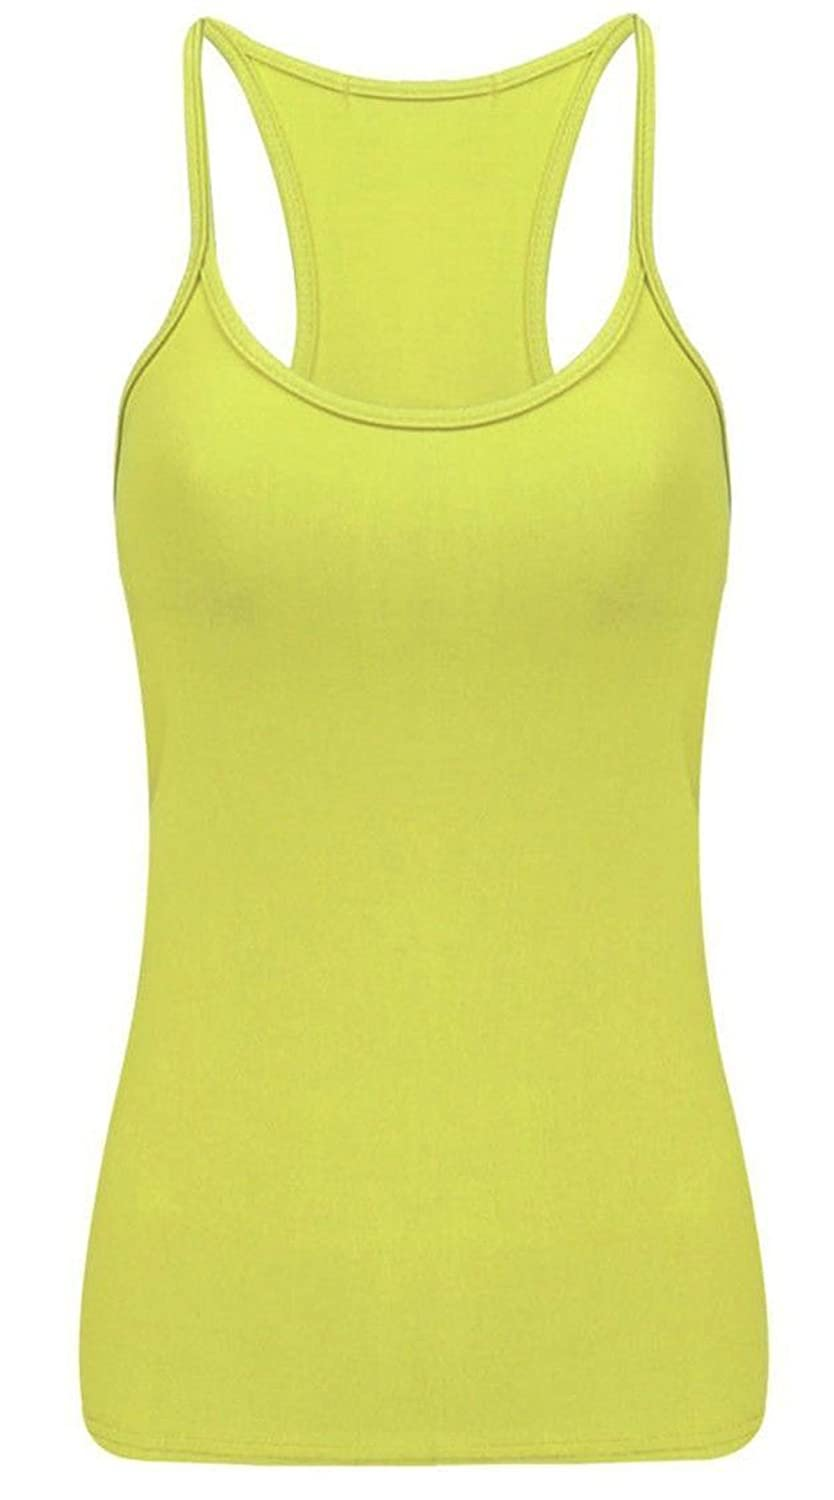 Crazy Chick Girls Neon Racer Back Vest Top Age 5-12 Years